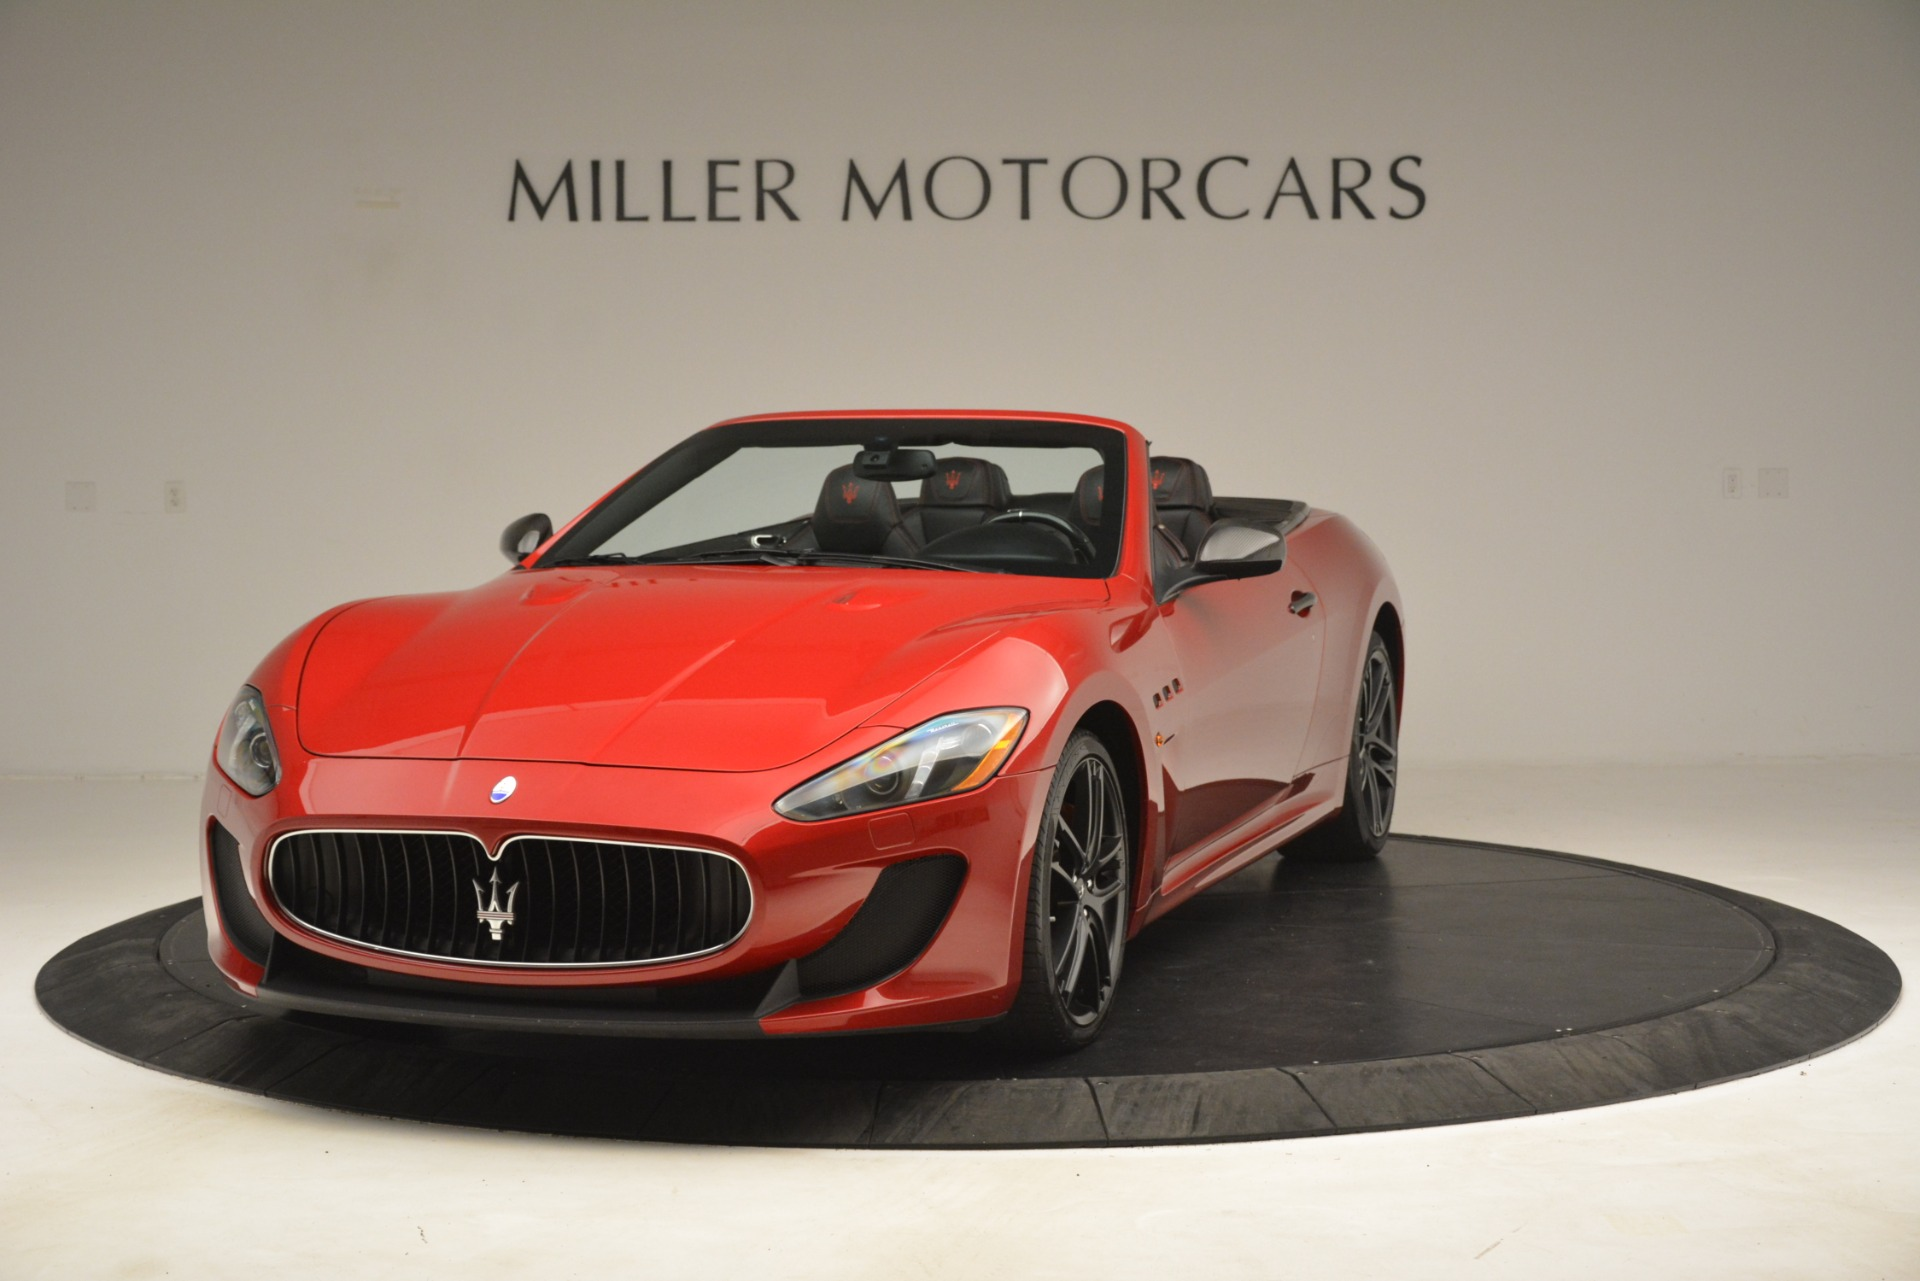 Used 2015 Maserati GranTurismo MC for sale Sold at McLaren Greenwich in Greenwich CT 06830 1